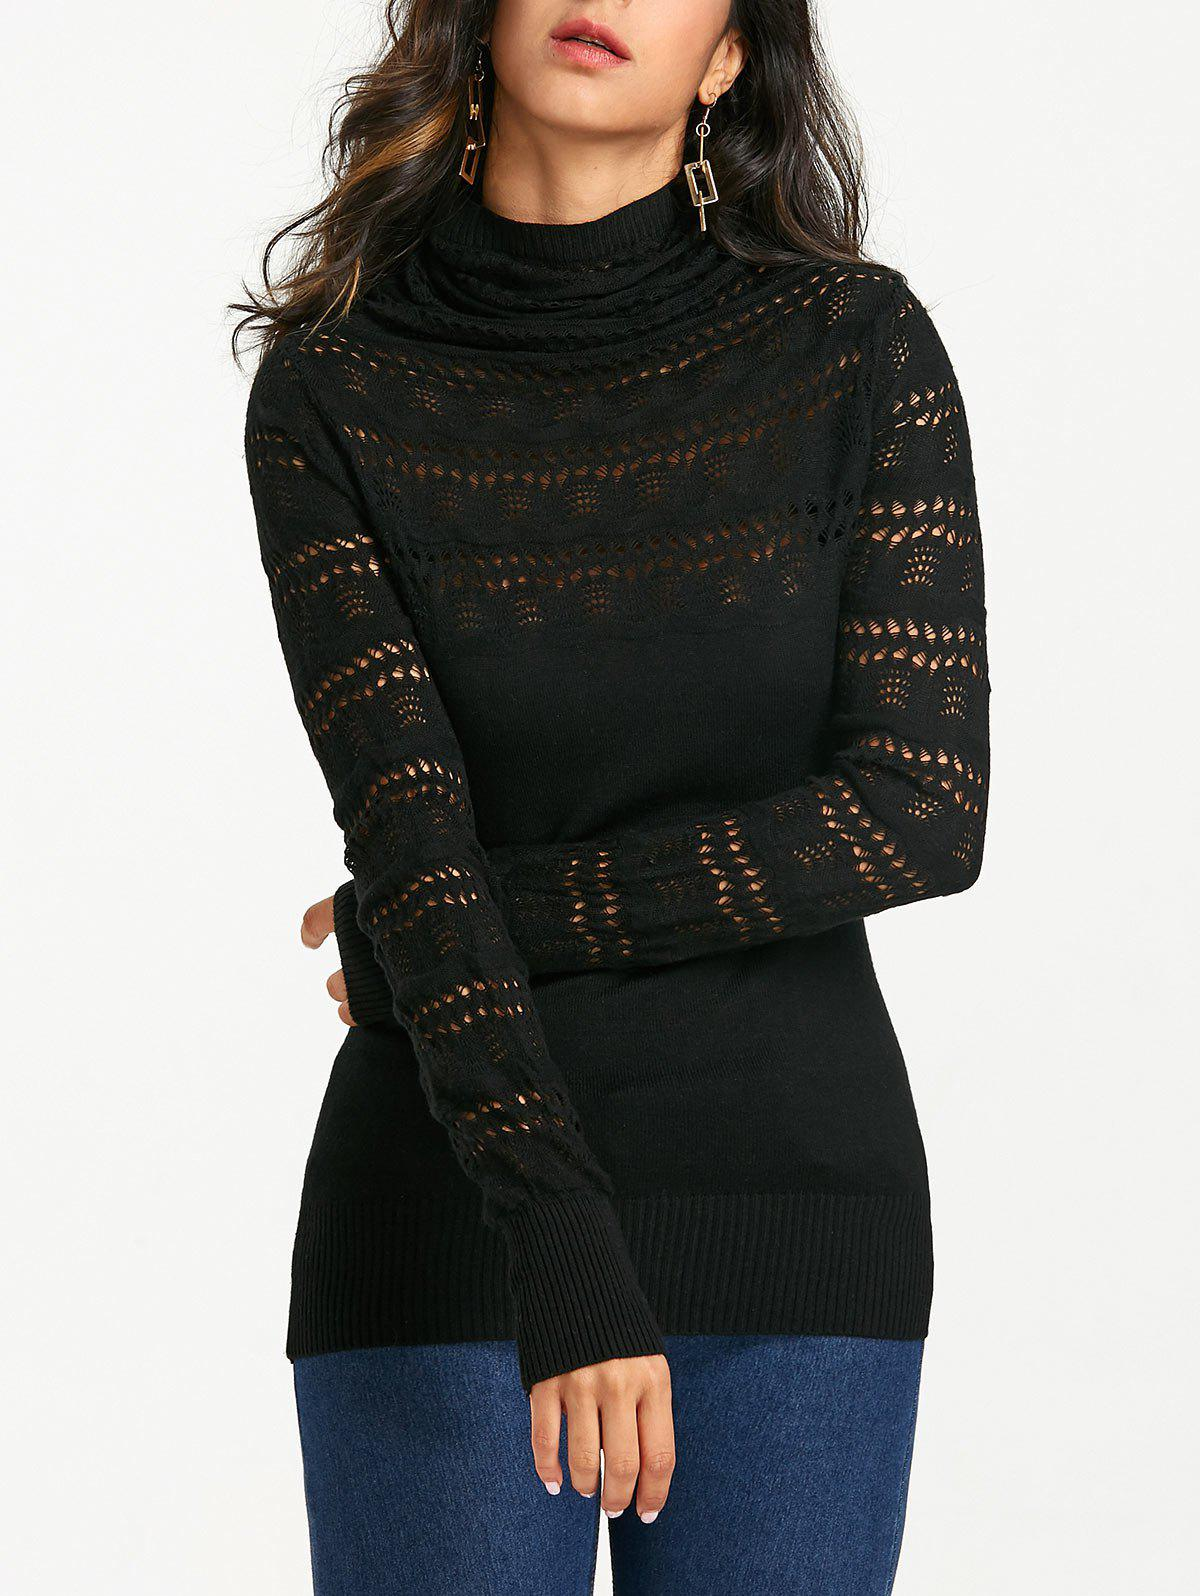 Cowl Neck Open Knitted Sweater - BLACK ONE SIZE